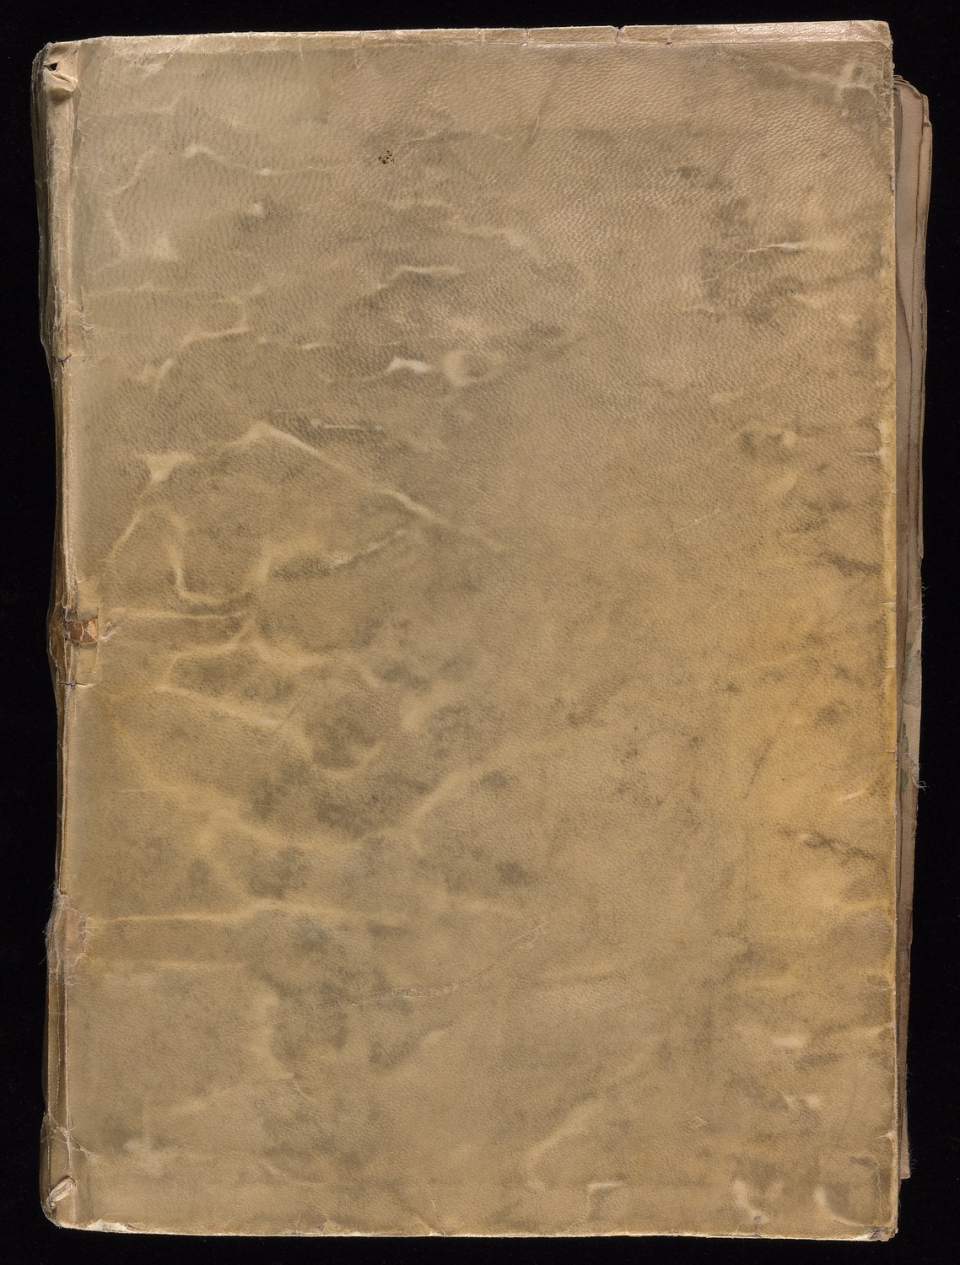 Front cover of the Voynich Manuscript. (Credit: Beinecke Rare Book and Manuscript Library, Yale University)